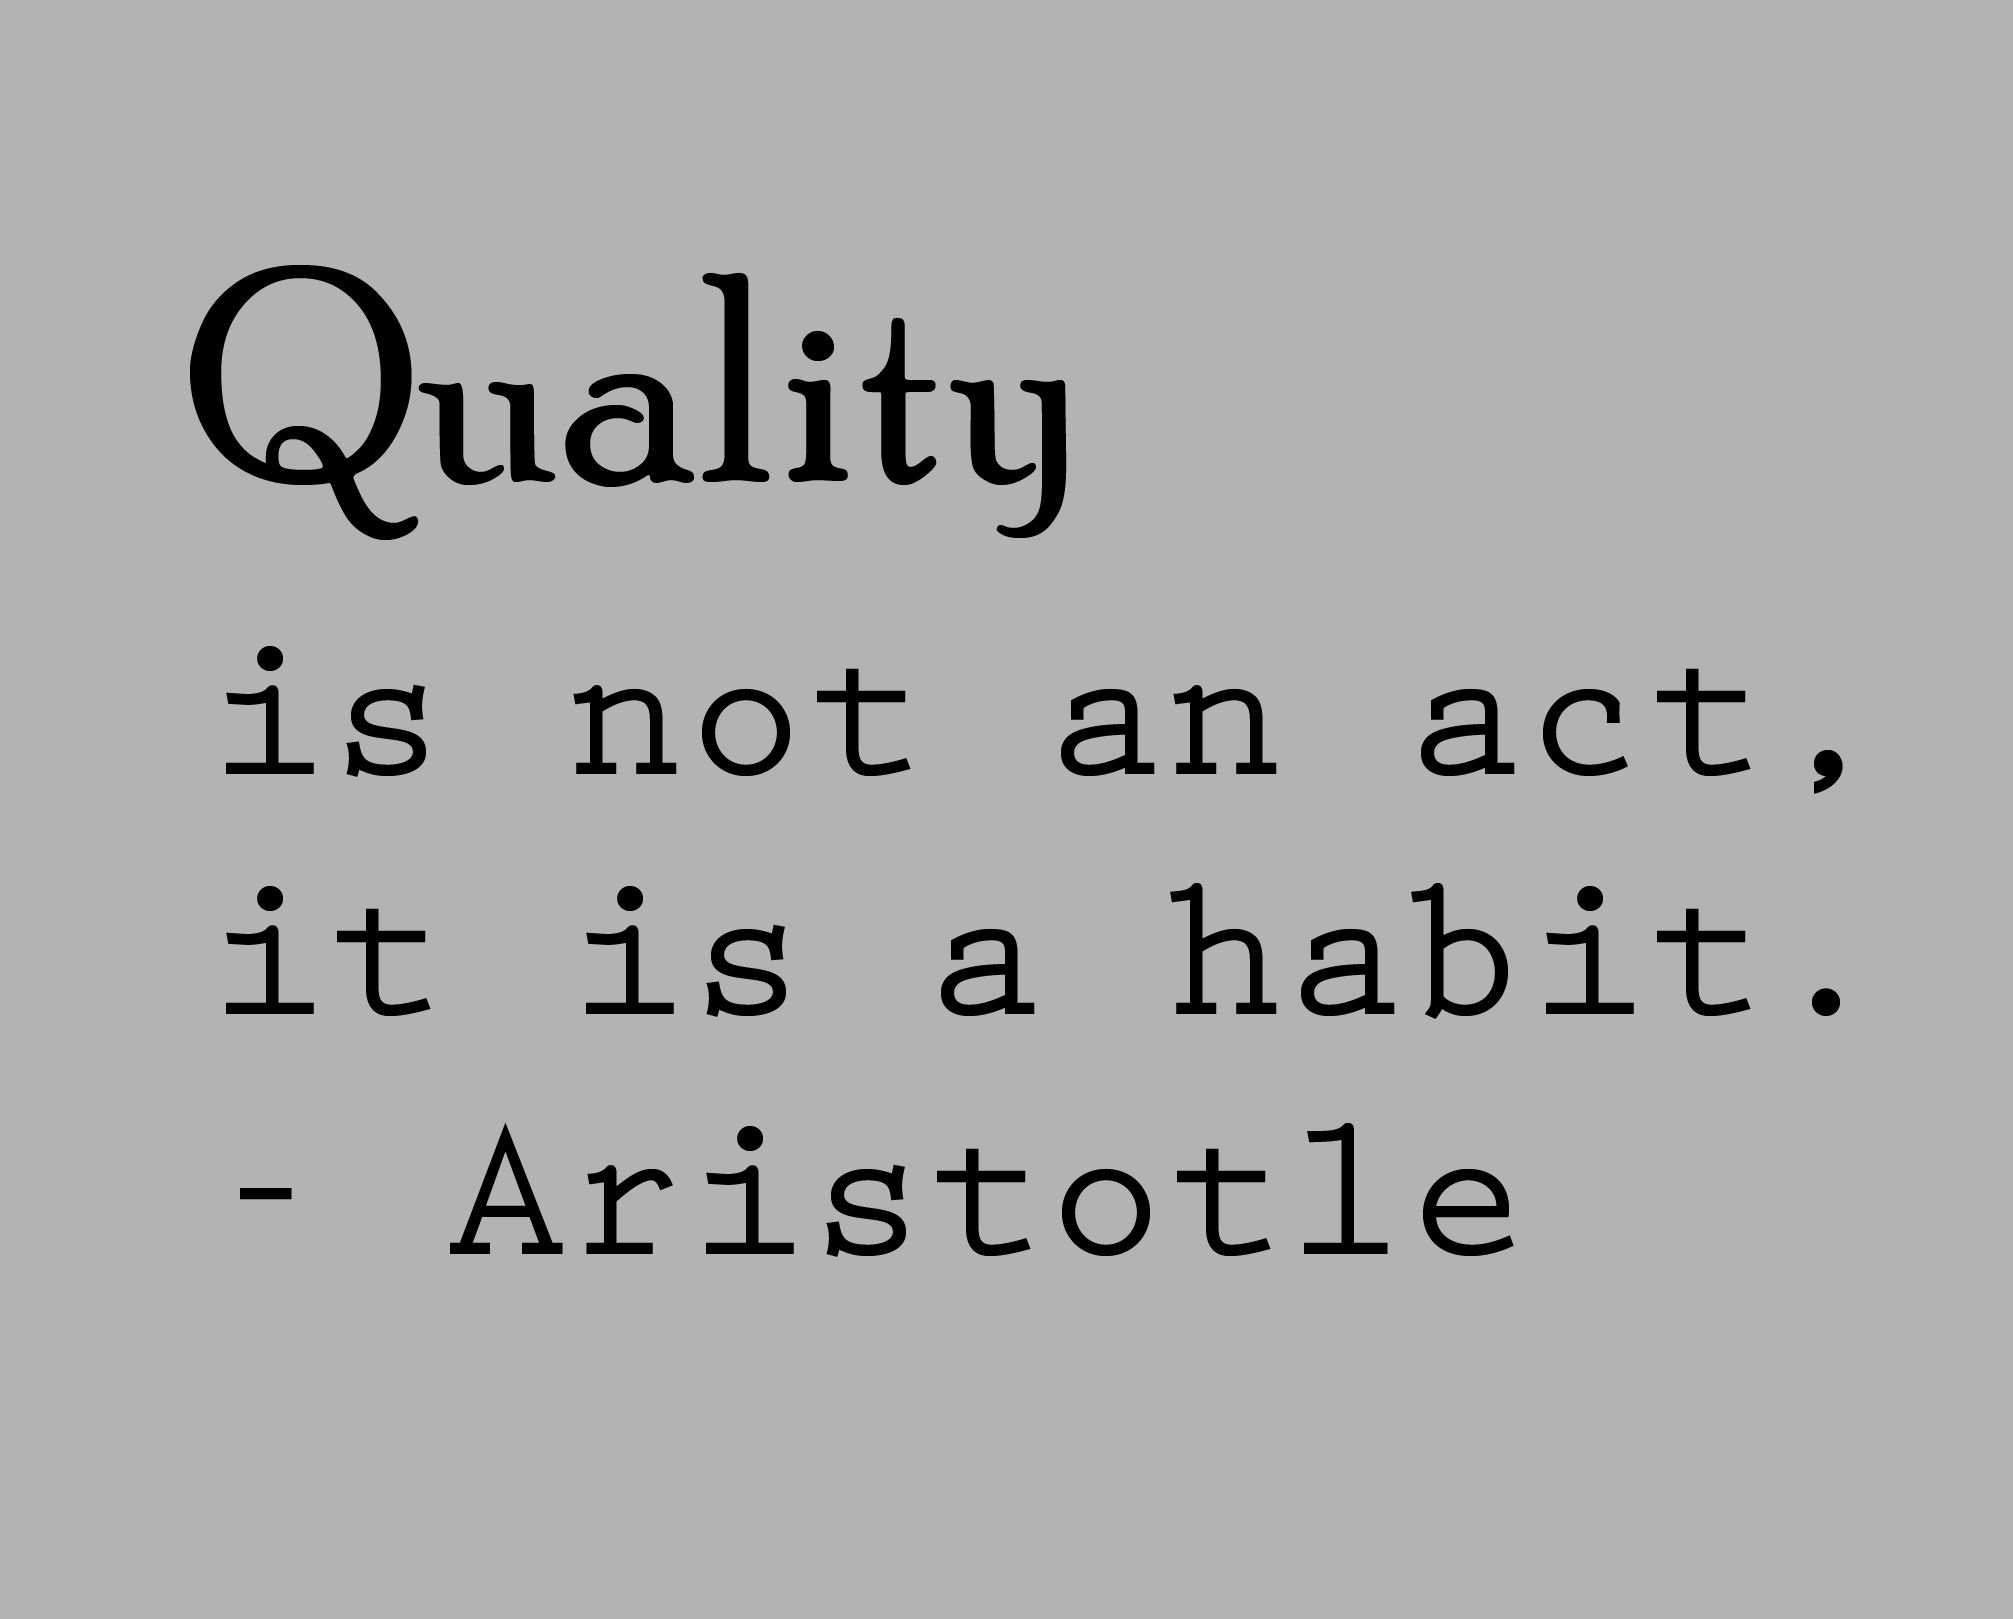 38 Best Aristotle Images On Pinterest: Quality Is Not An Act, It Is A Habit. - Aristotle